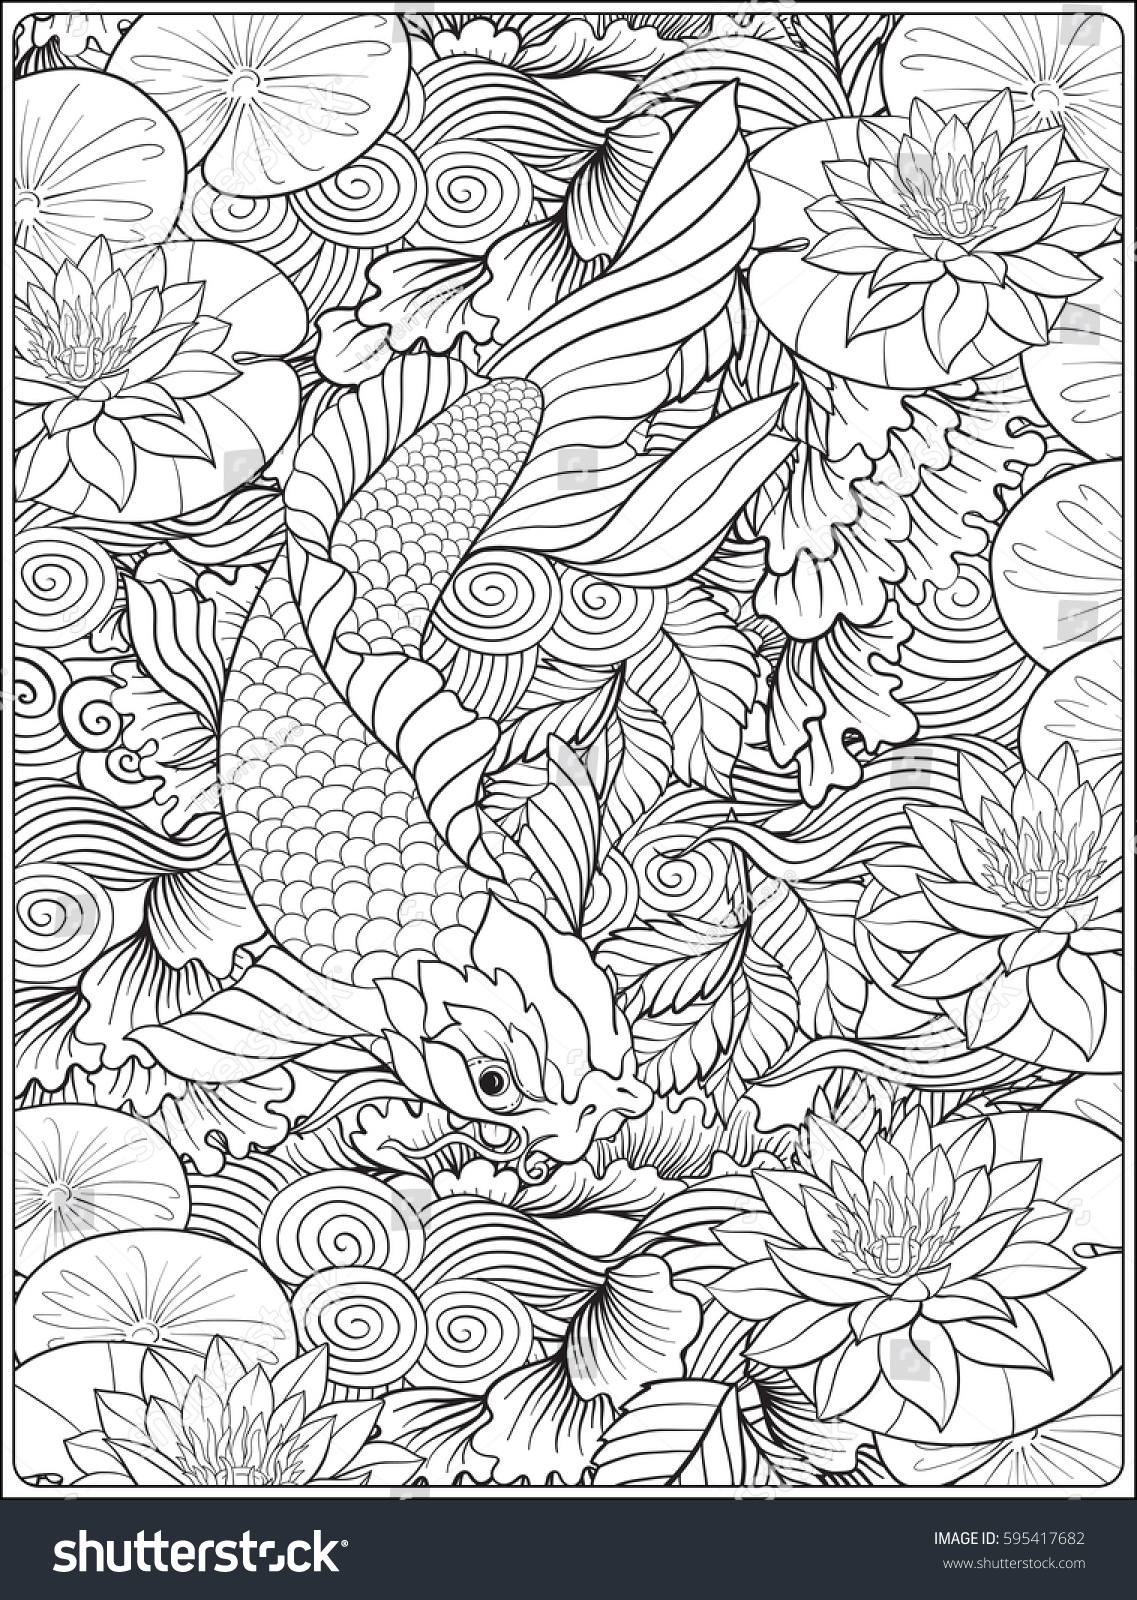 japanese carp lake lotus flowers outline stock vector 595417682